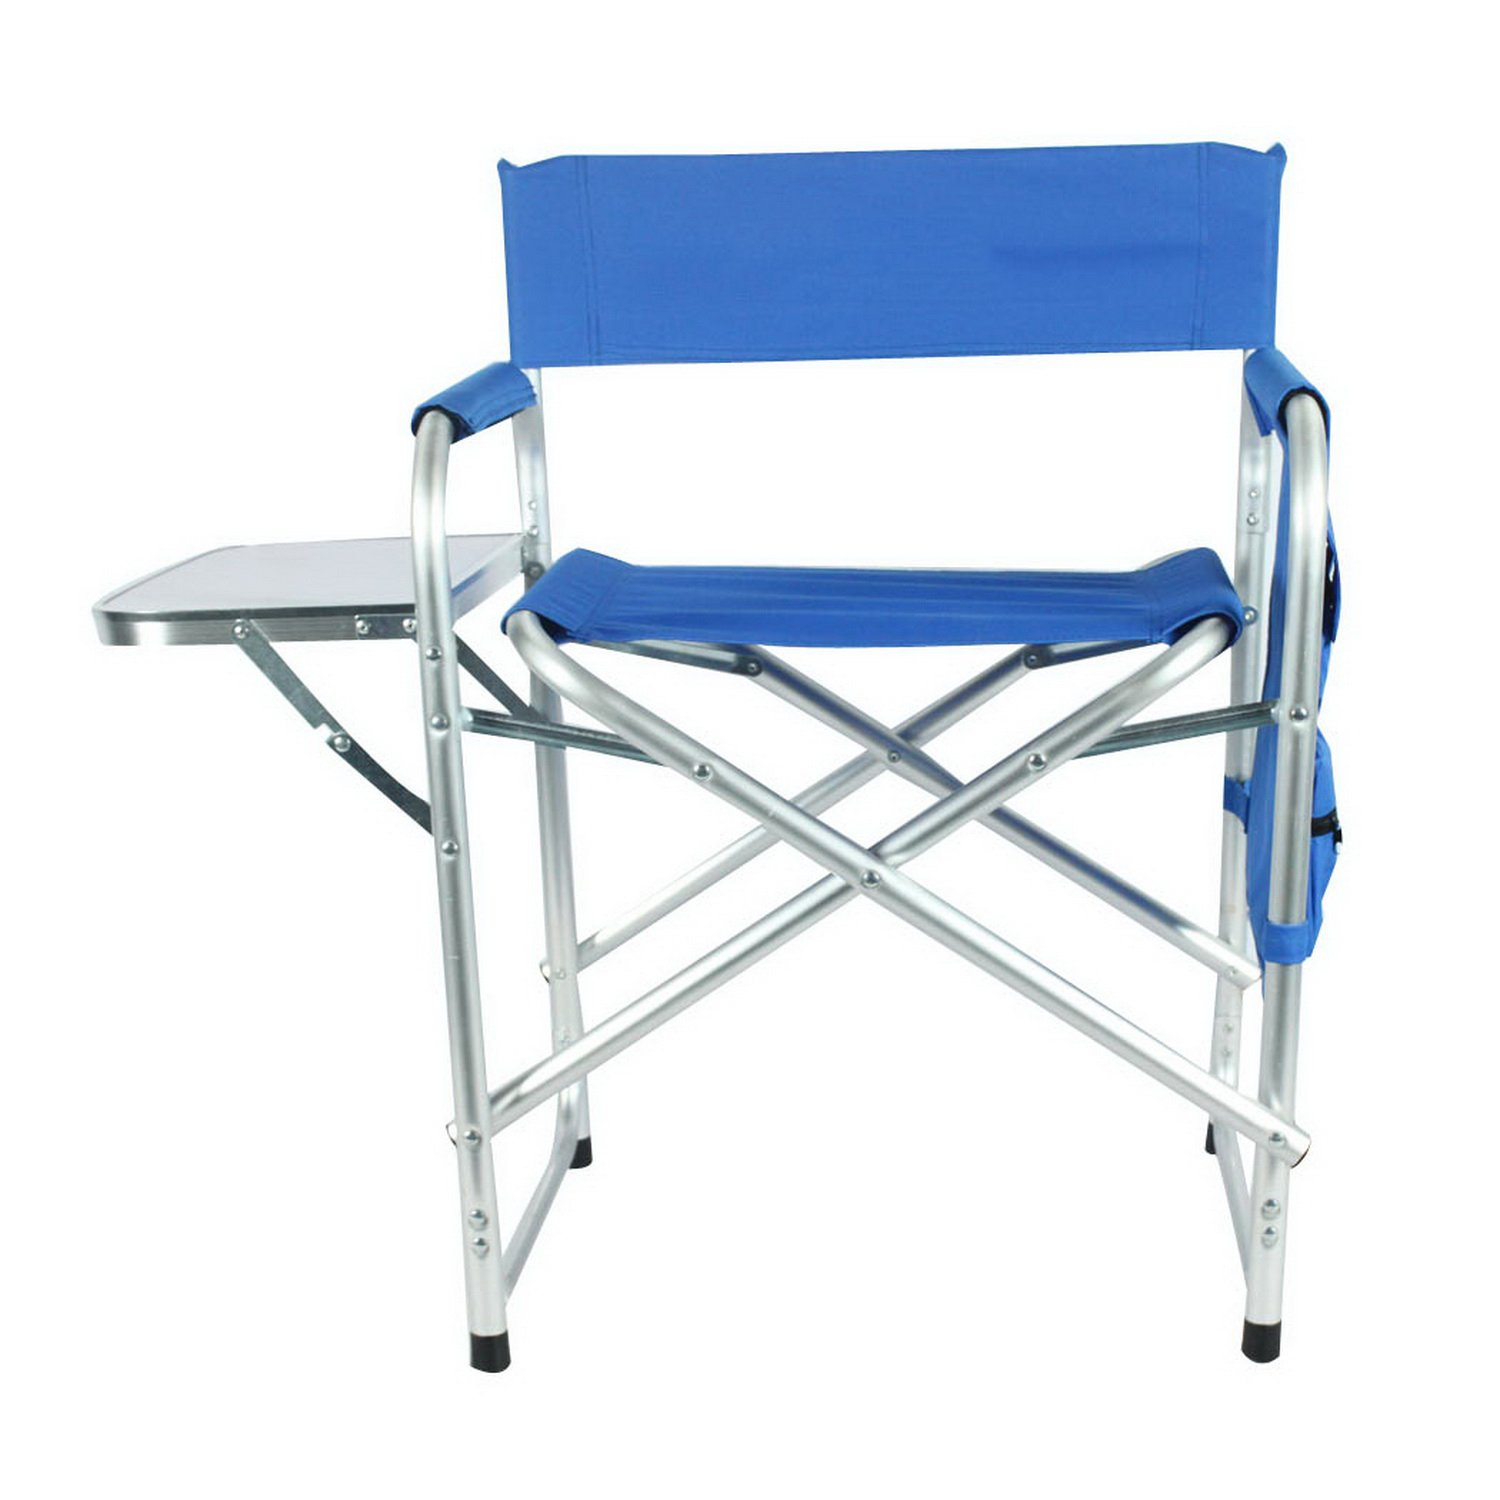 Aluminum Portable Director's holder Folding Chair with Side Table Supports 300lbs